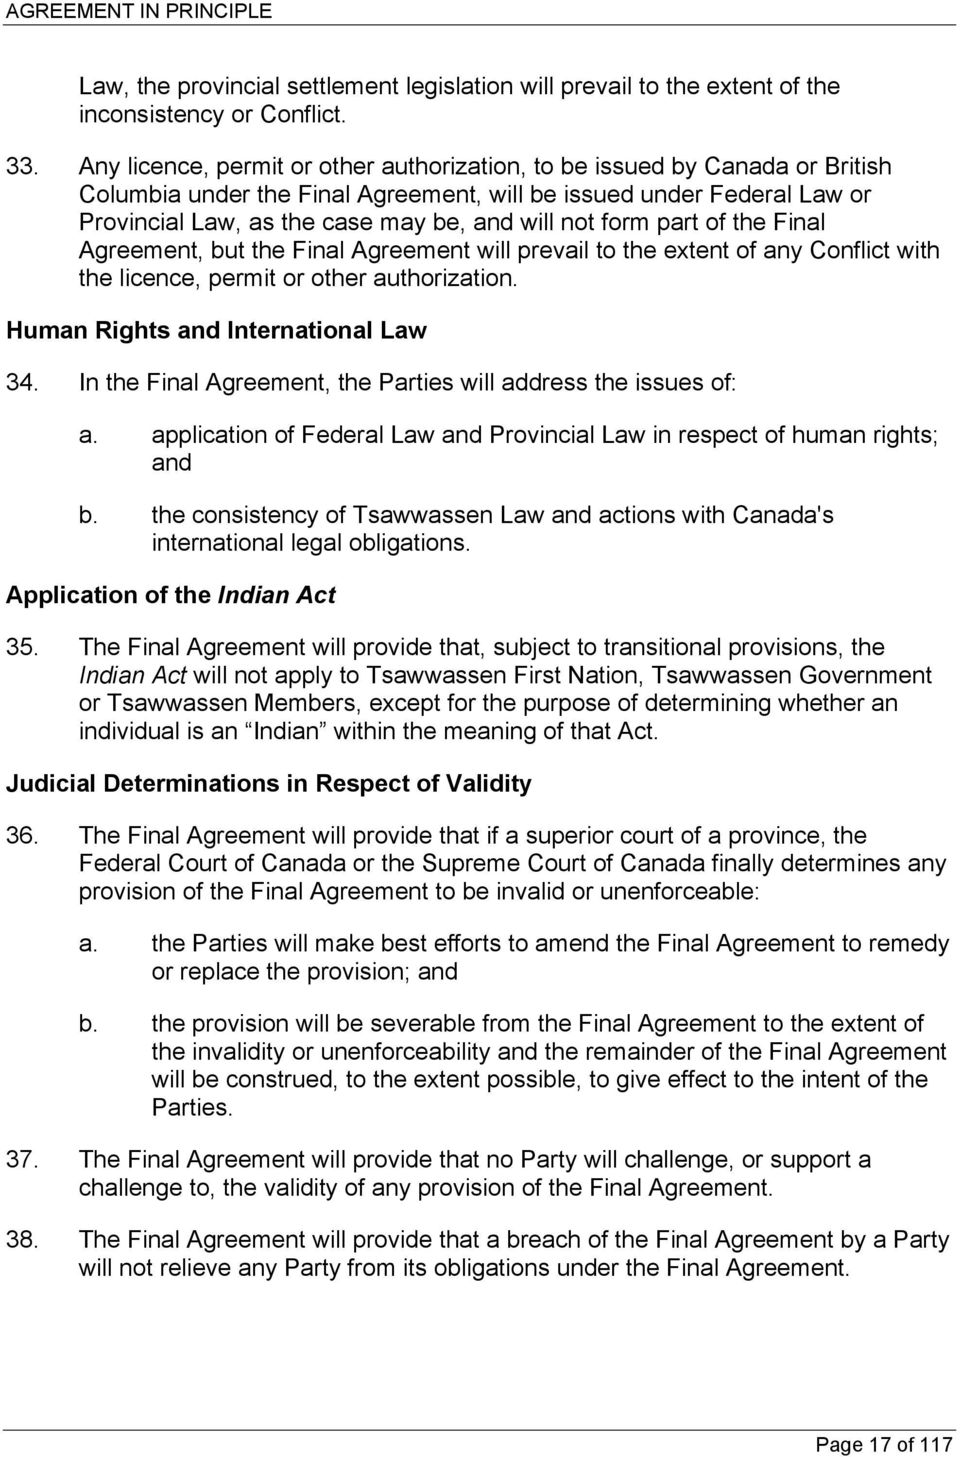 form part of the Final Agreement, but the Final Agreement will prevail to the extent of any Conflict with the licence, permit or other authorization. Human Rights and International Law 34.